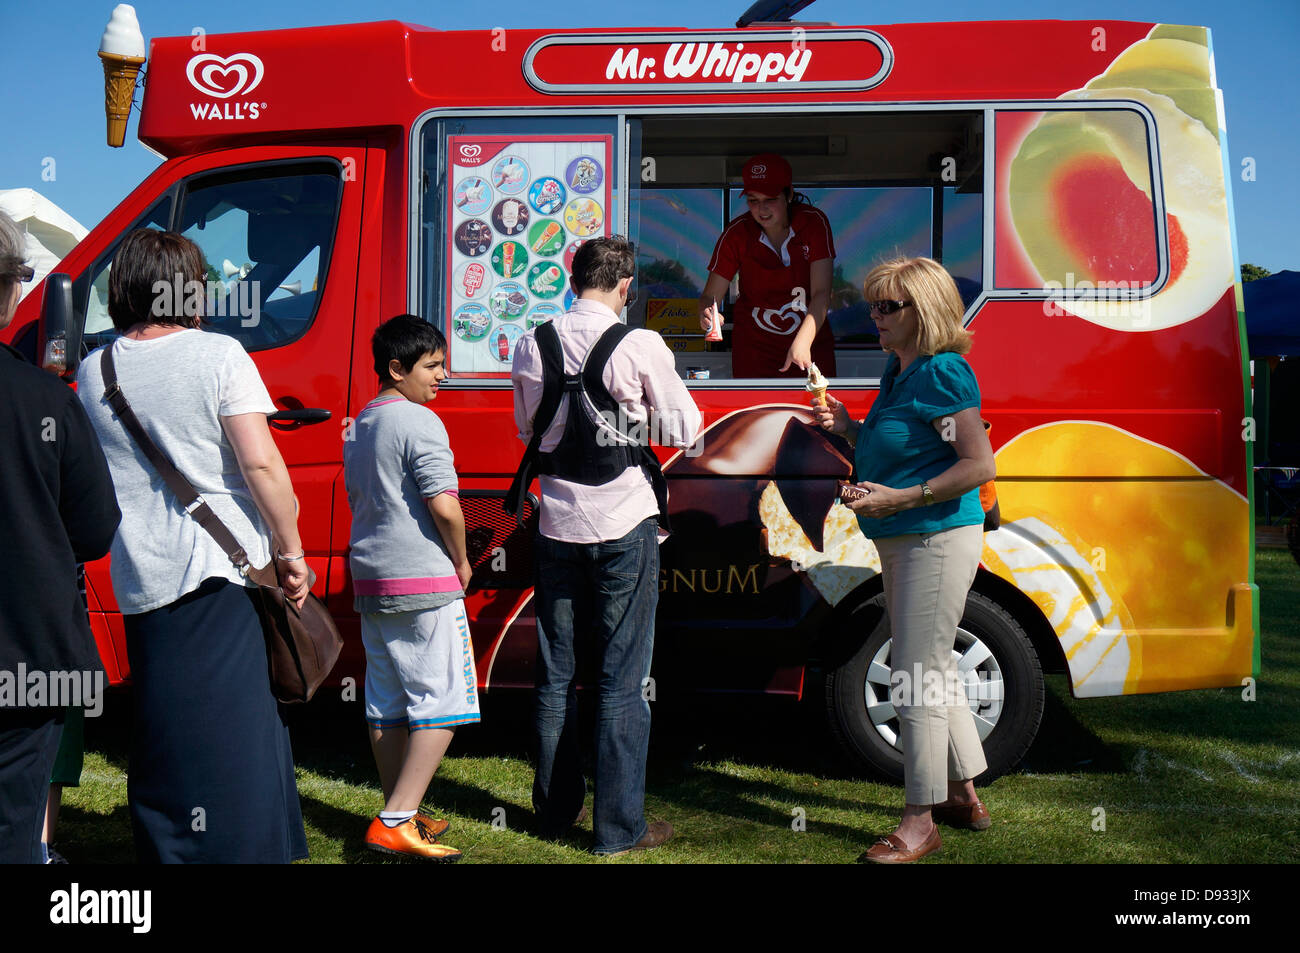 Customers queuing for traditional Wall's Mr Whippy ice cream, from a parked vehicle, outside on a hot summer - Stock Image